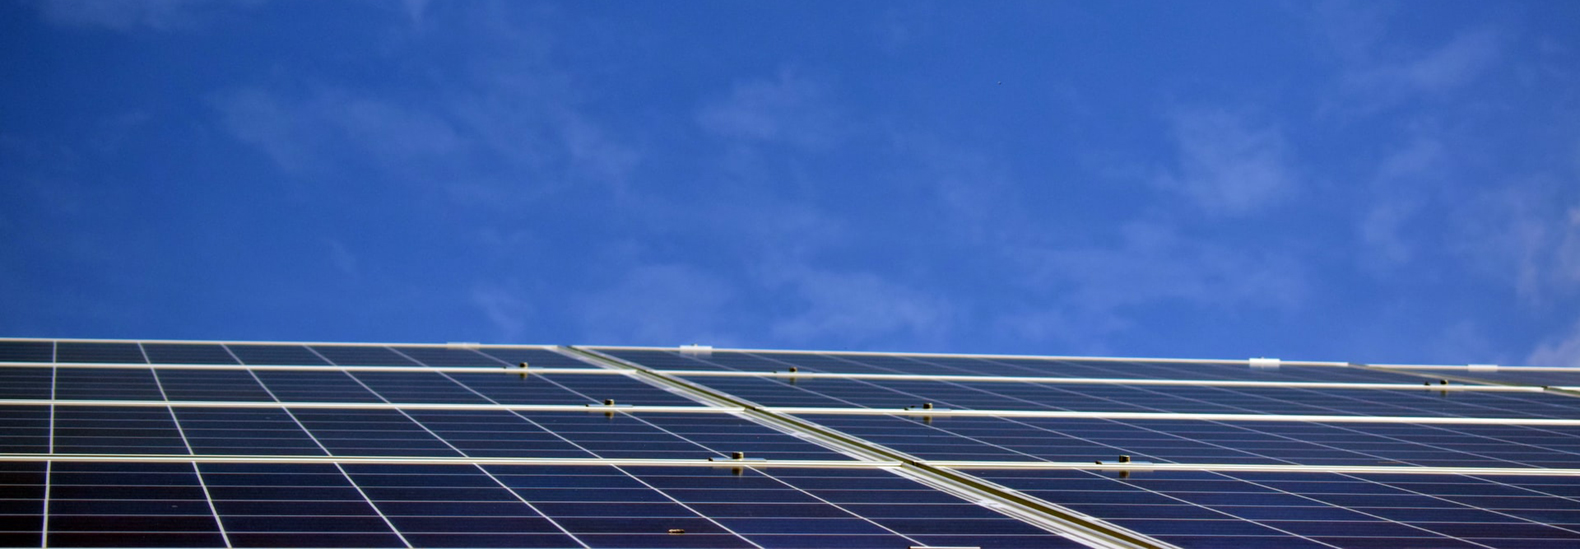 World's largest solar power plant to supply energy to Australia and Singapore